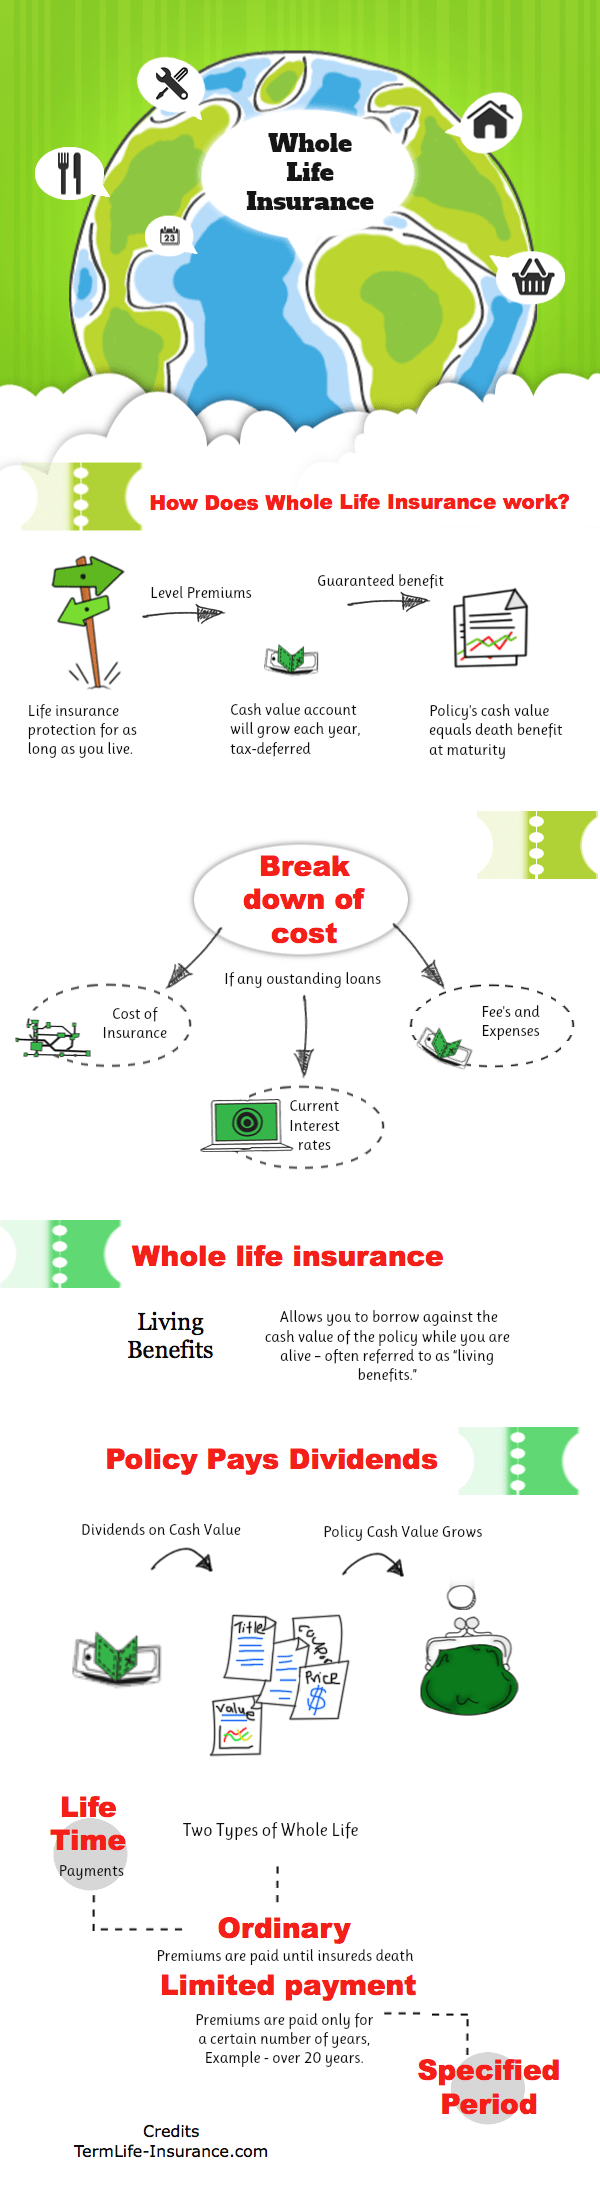 Instant Life Insurance Quote Instant Whole Life Insurance Quotesup To $100000 In Coverage.